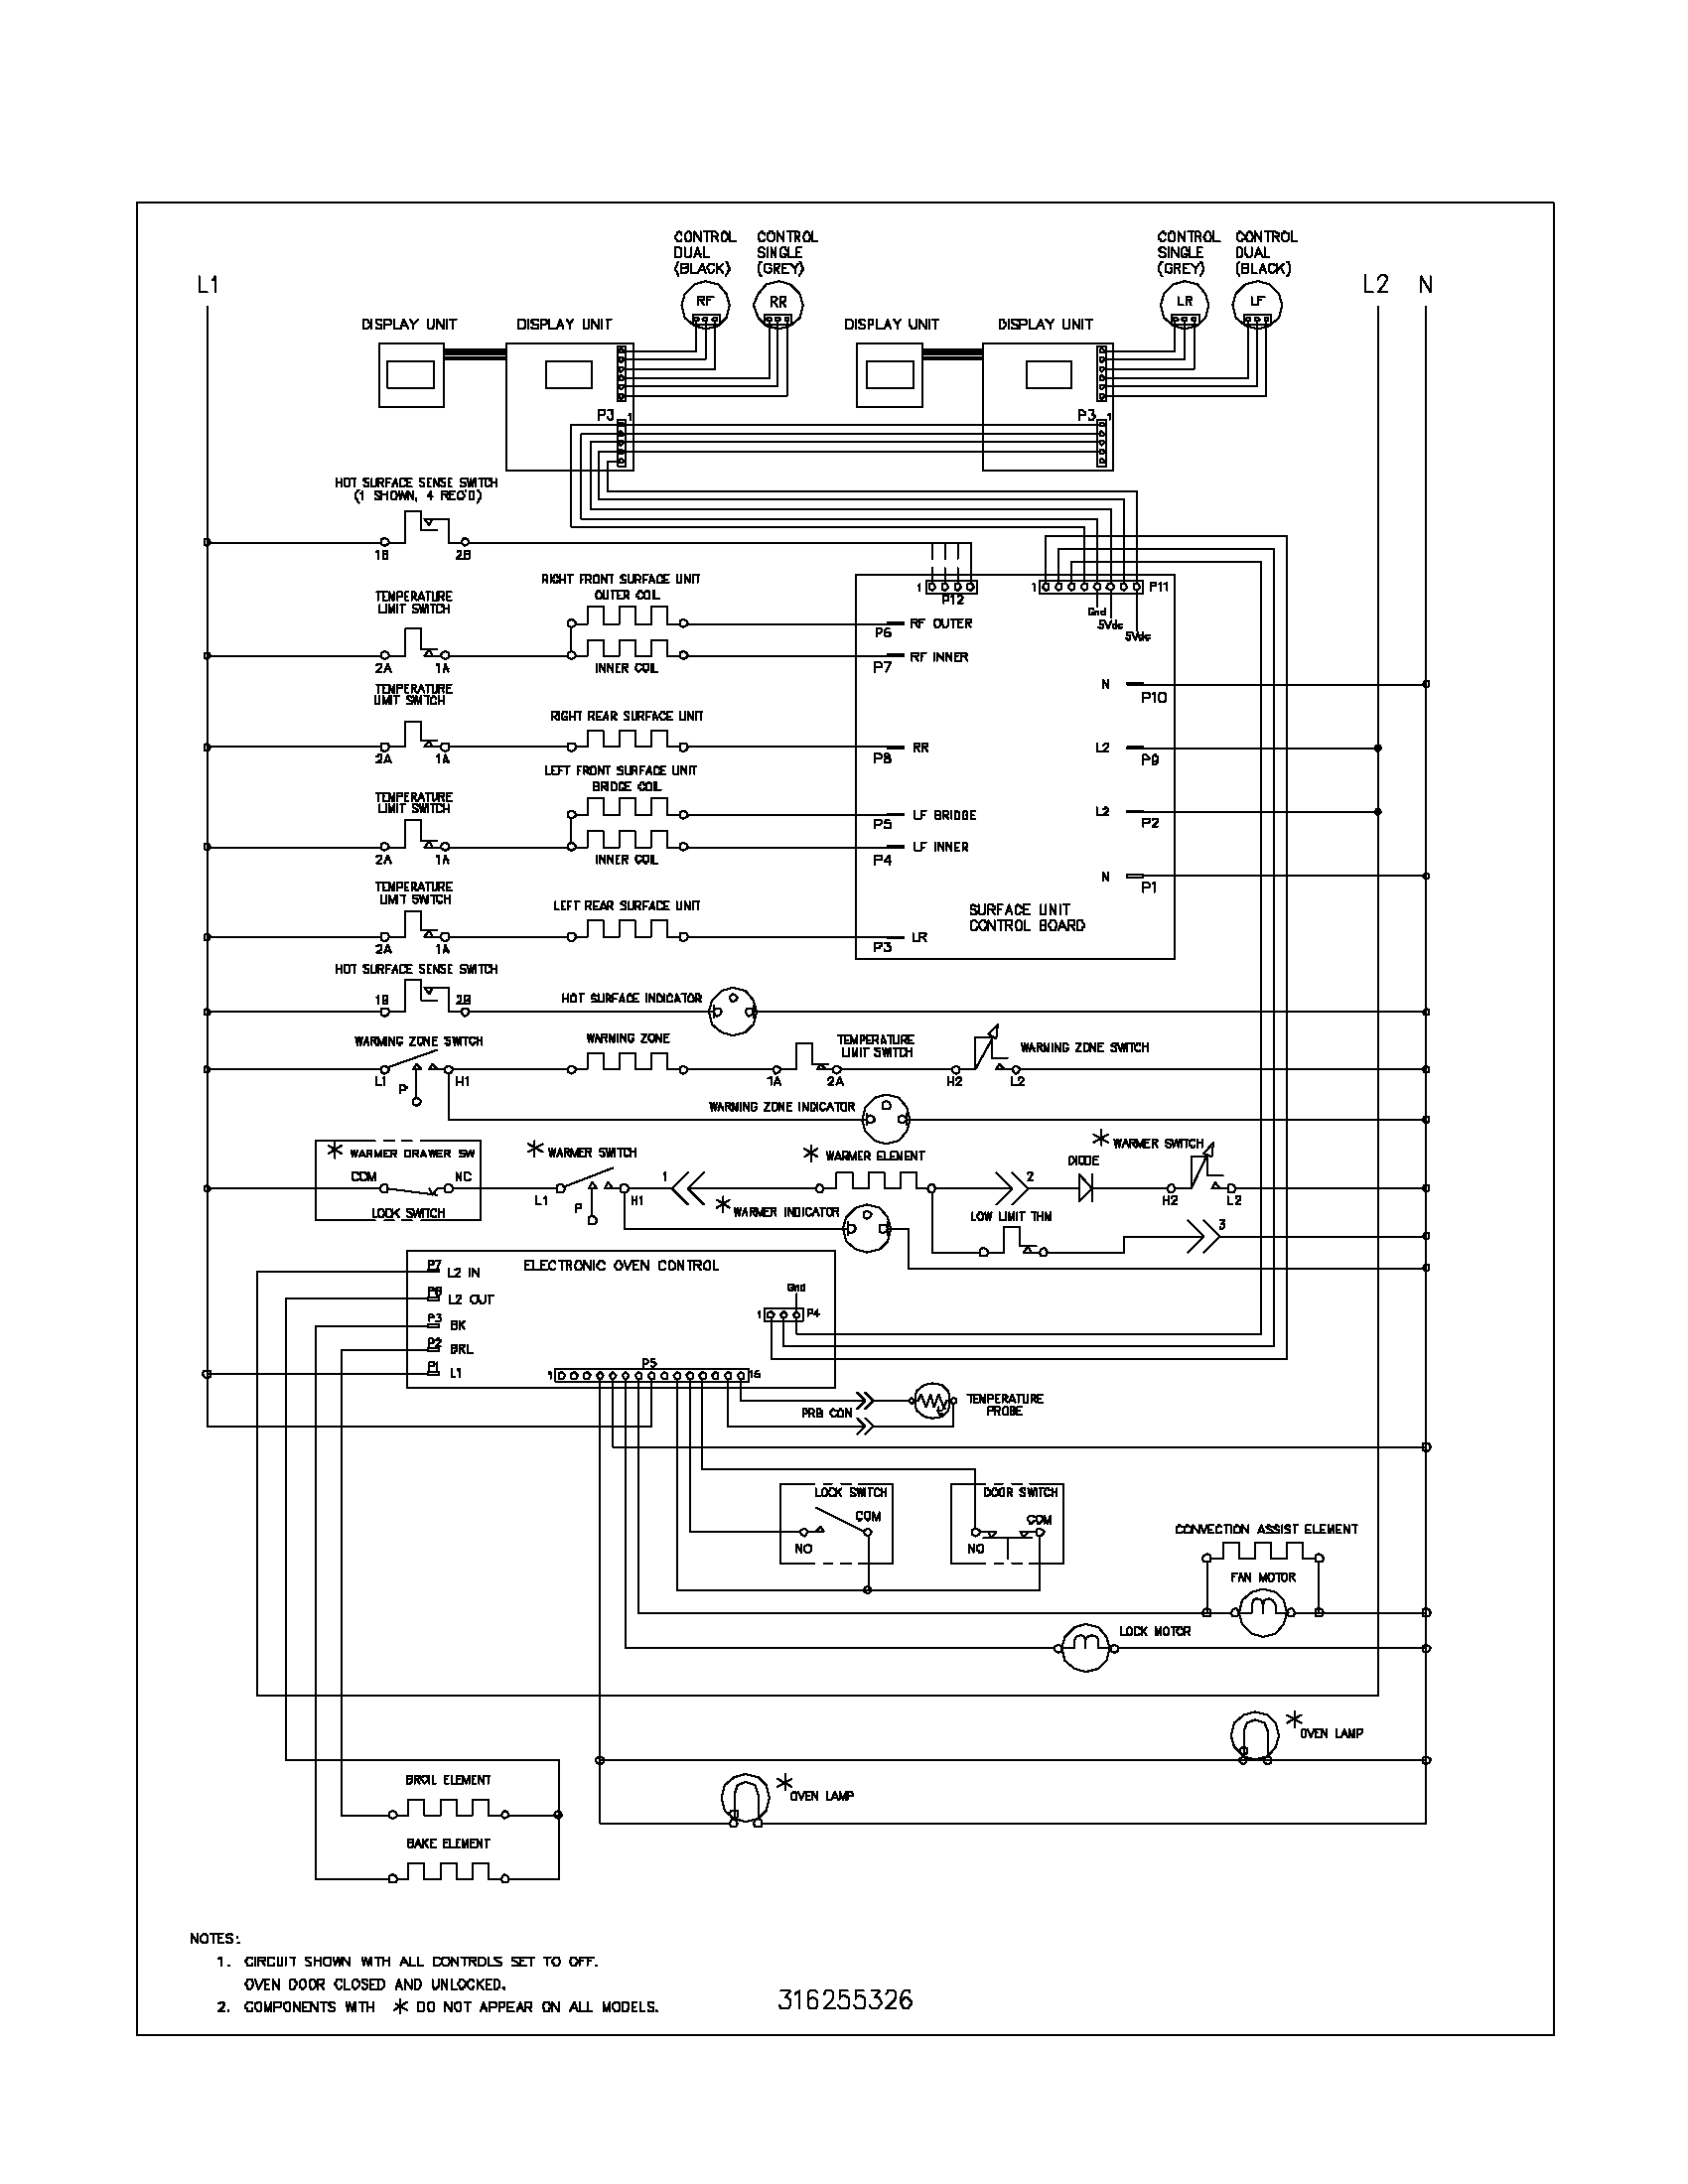 Diagram For Wiring Lights And Outlets On Same Circuit as well Peterbilt 357 Wiring Diagram further Wiring Two Gang Switch Box For Ceiling also Wiring Switch Plug  bo additionally 3910. on light switch outlet combo wiring diagram